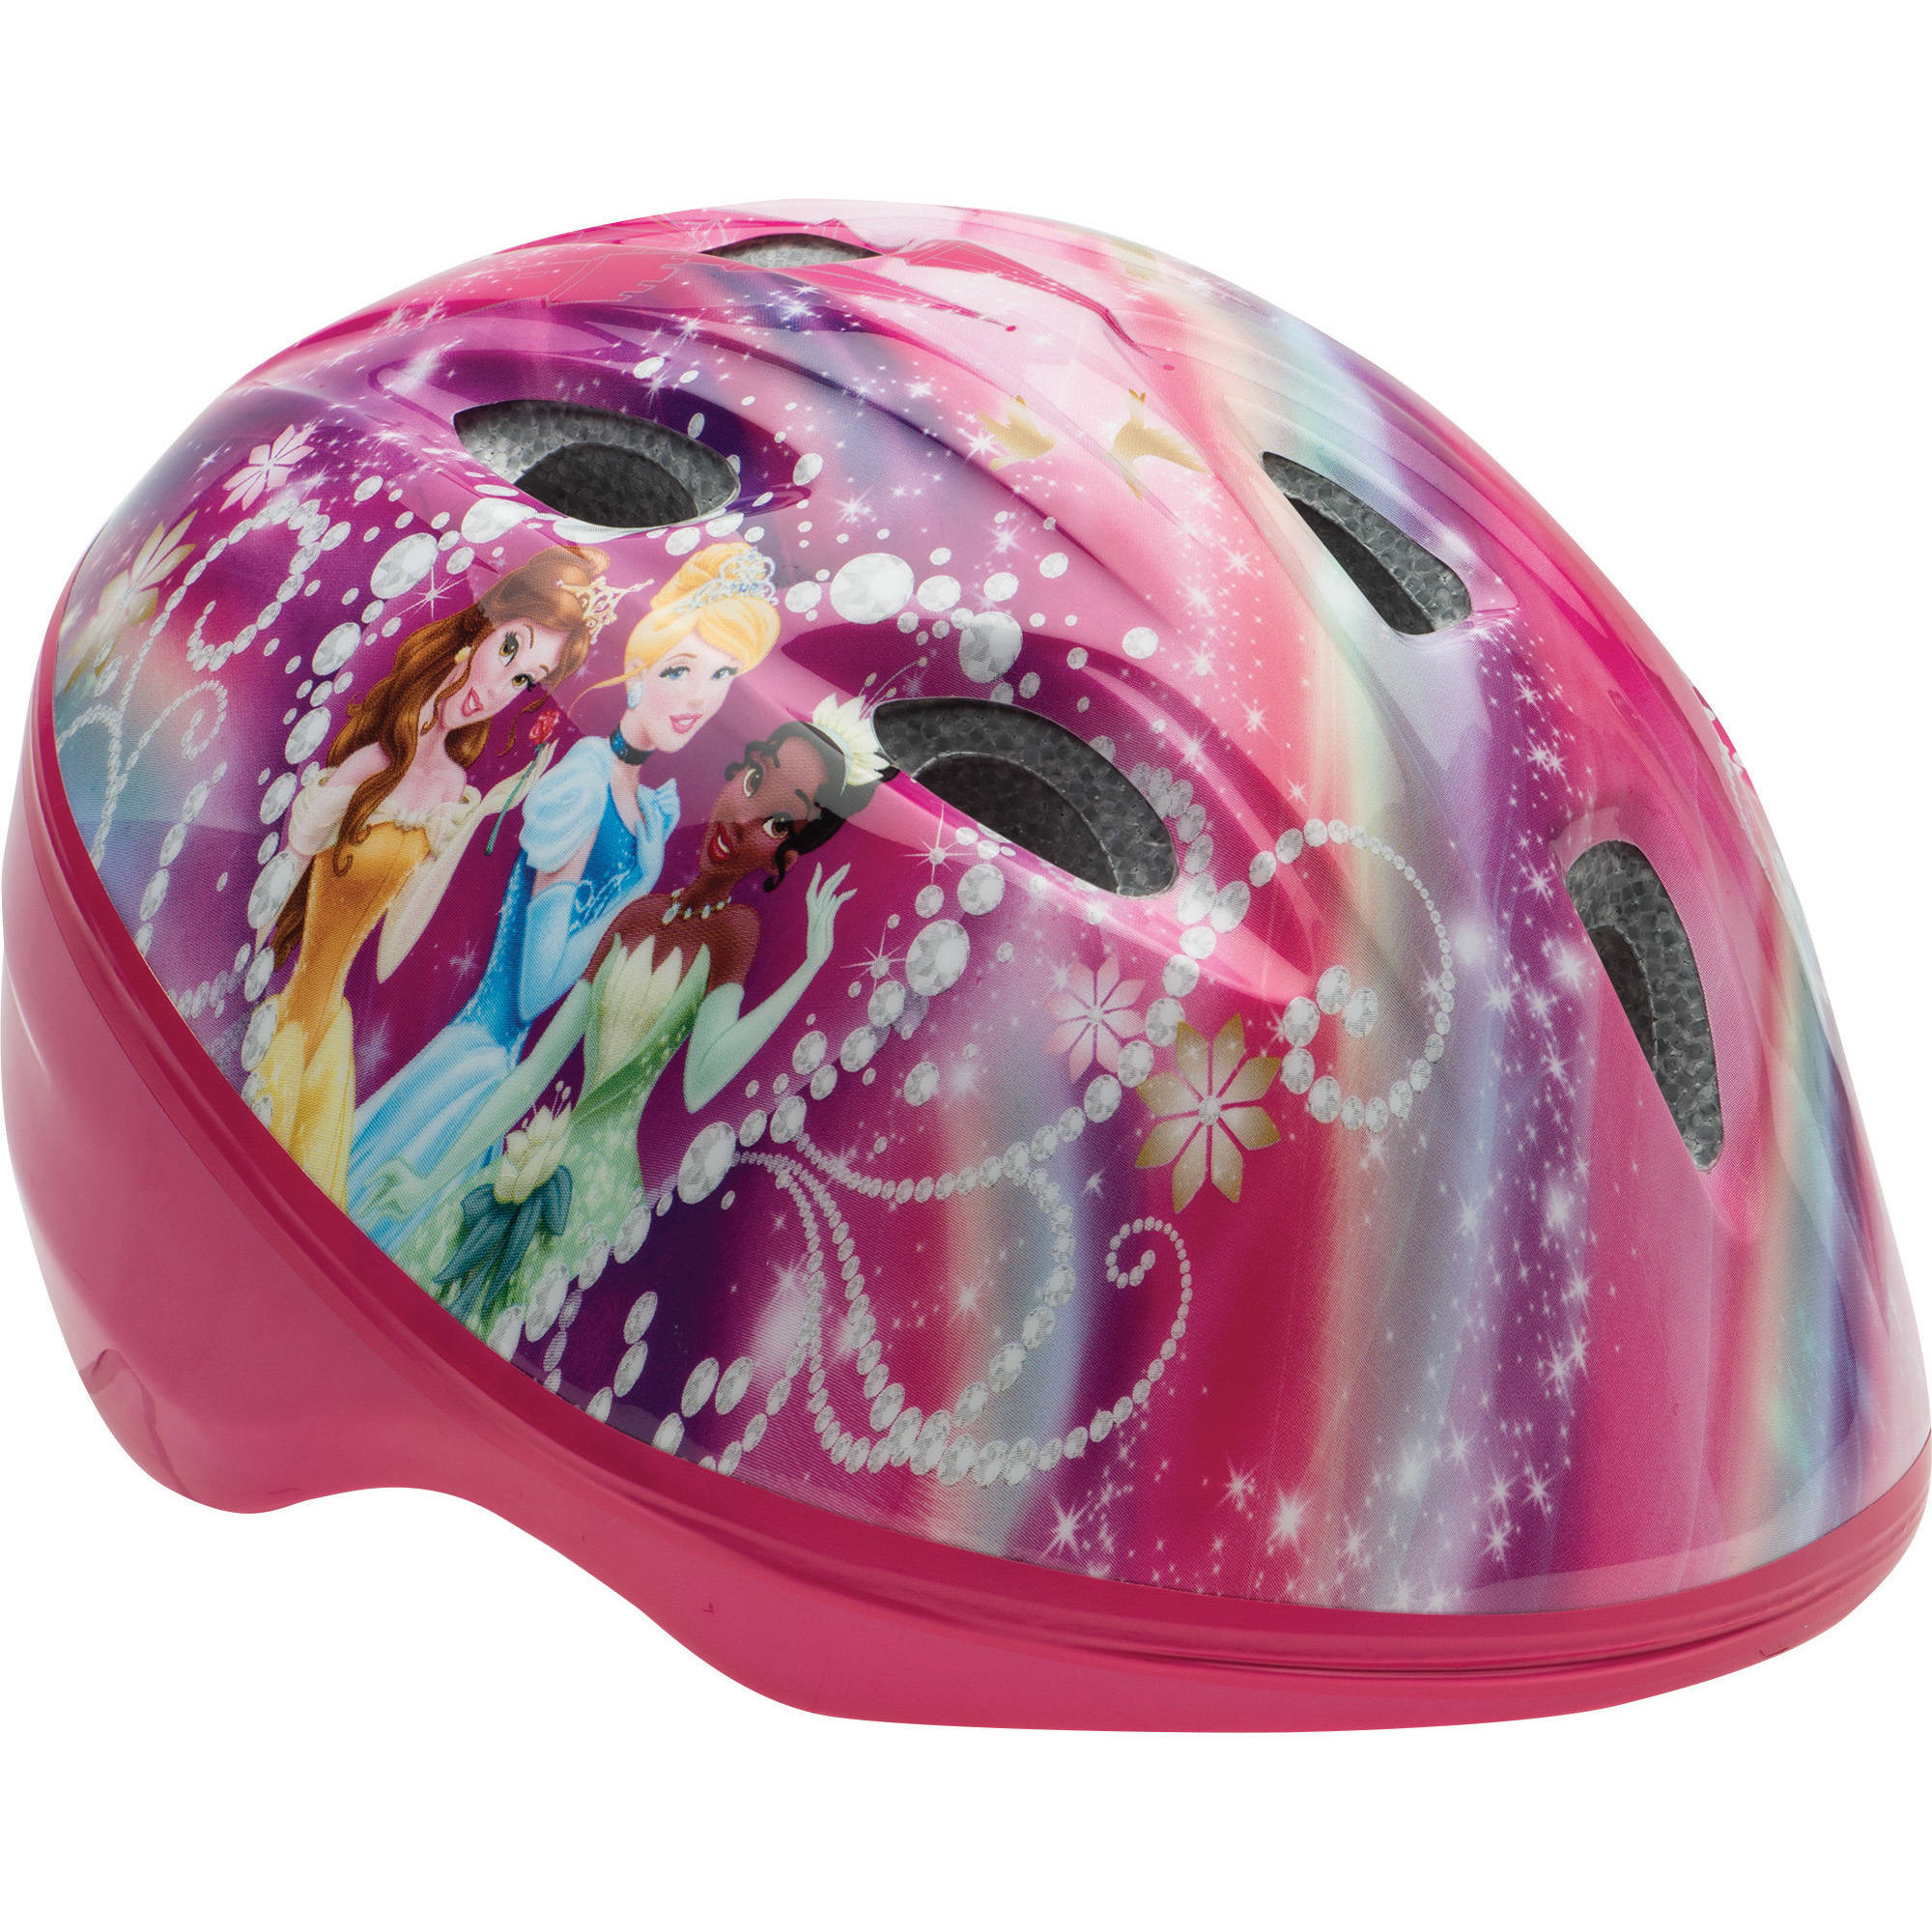 Bell Sports Princess Toddler Helmet